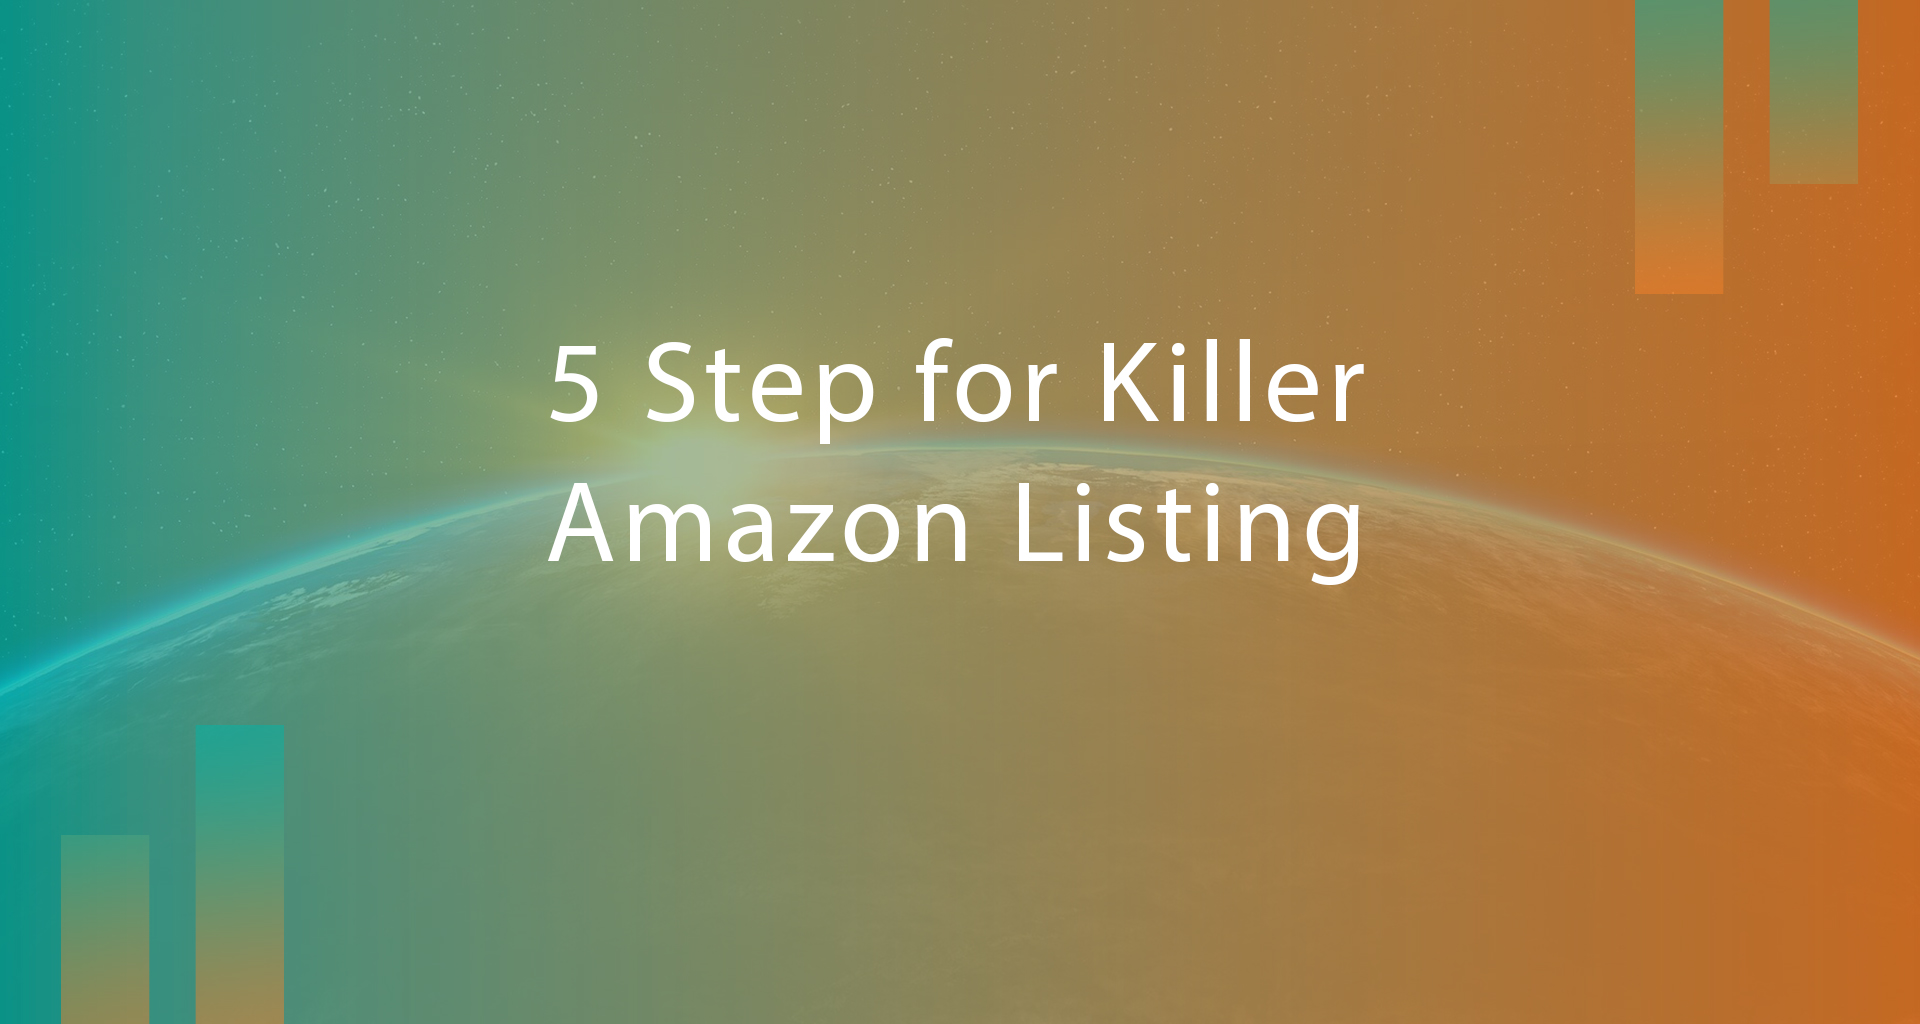 5 Things You Need to do for a Killer Amazon Product Listing